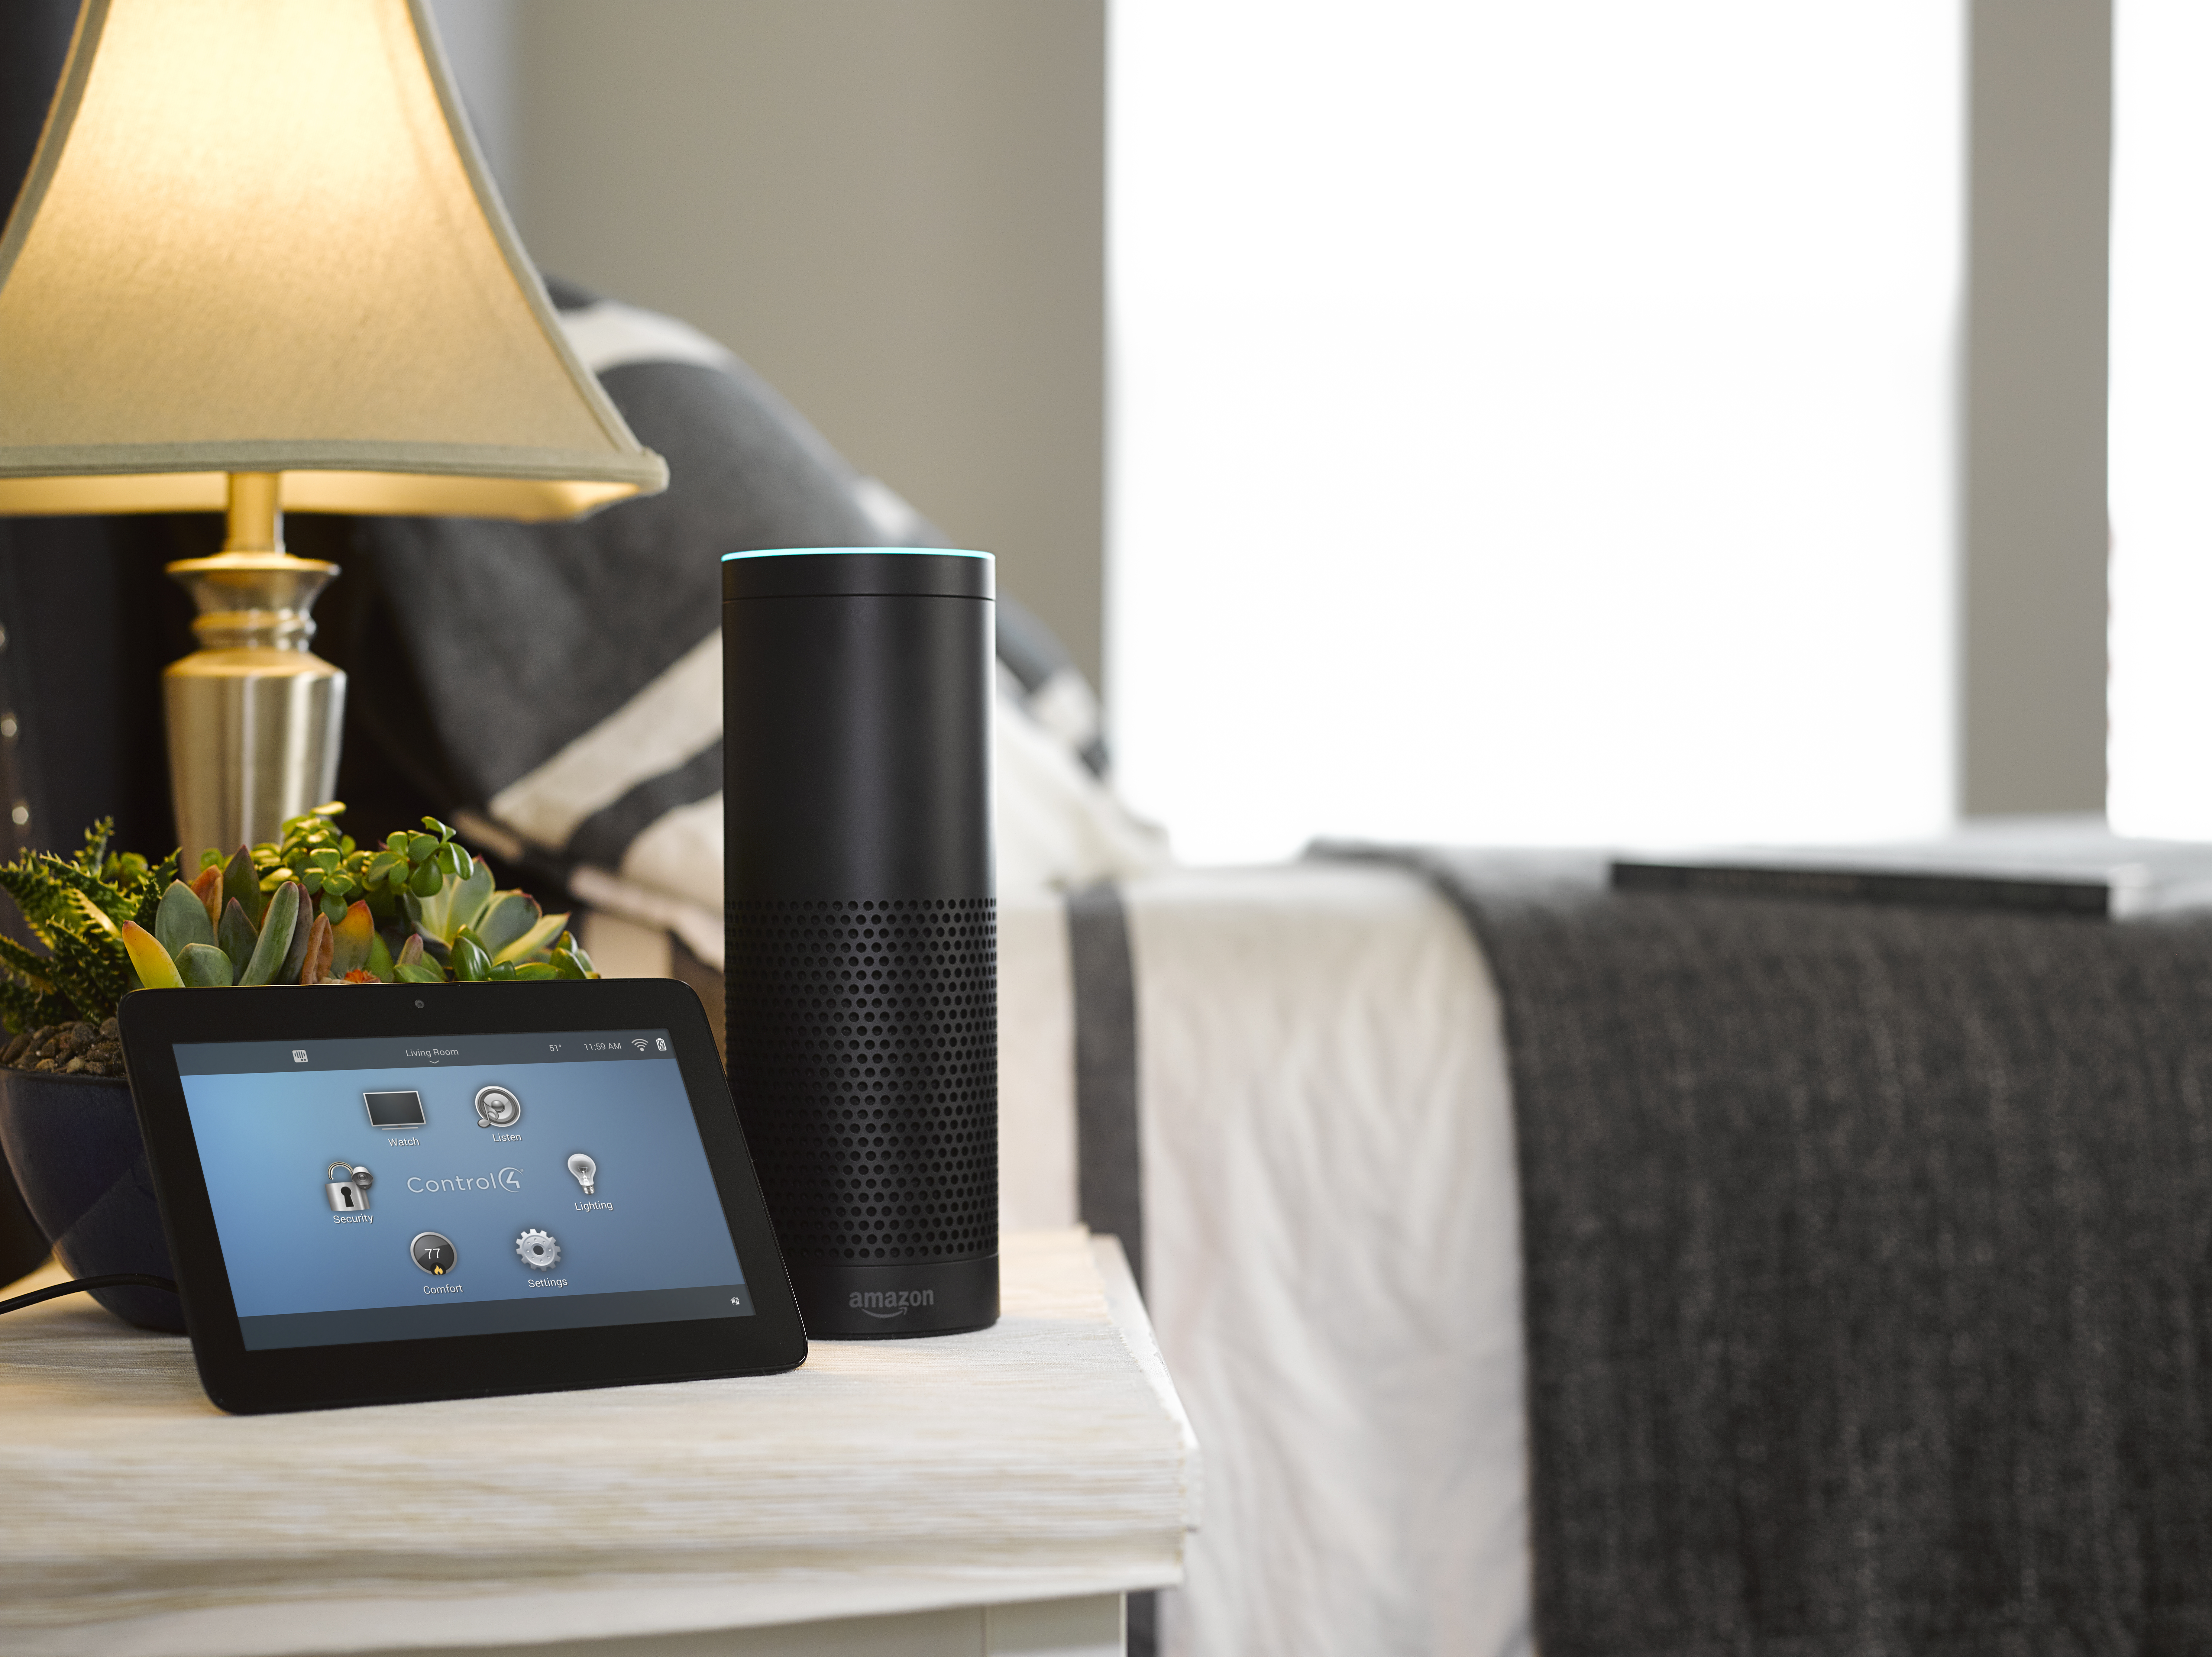 Control4 Launches Amazon Alexa Skill for Voice-Enabled Whole-Home Automation  | Business Wire